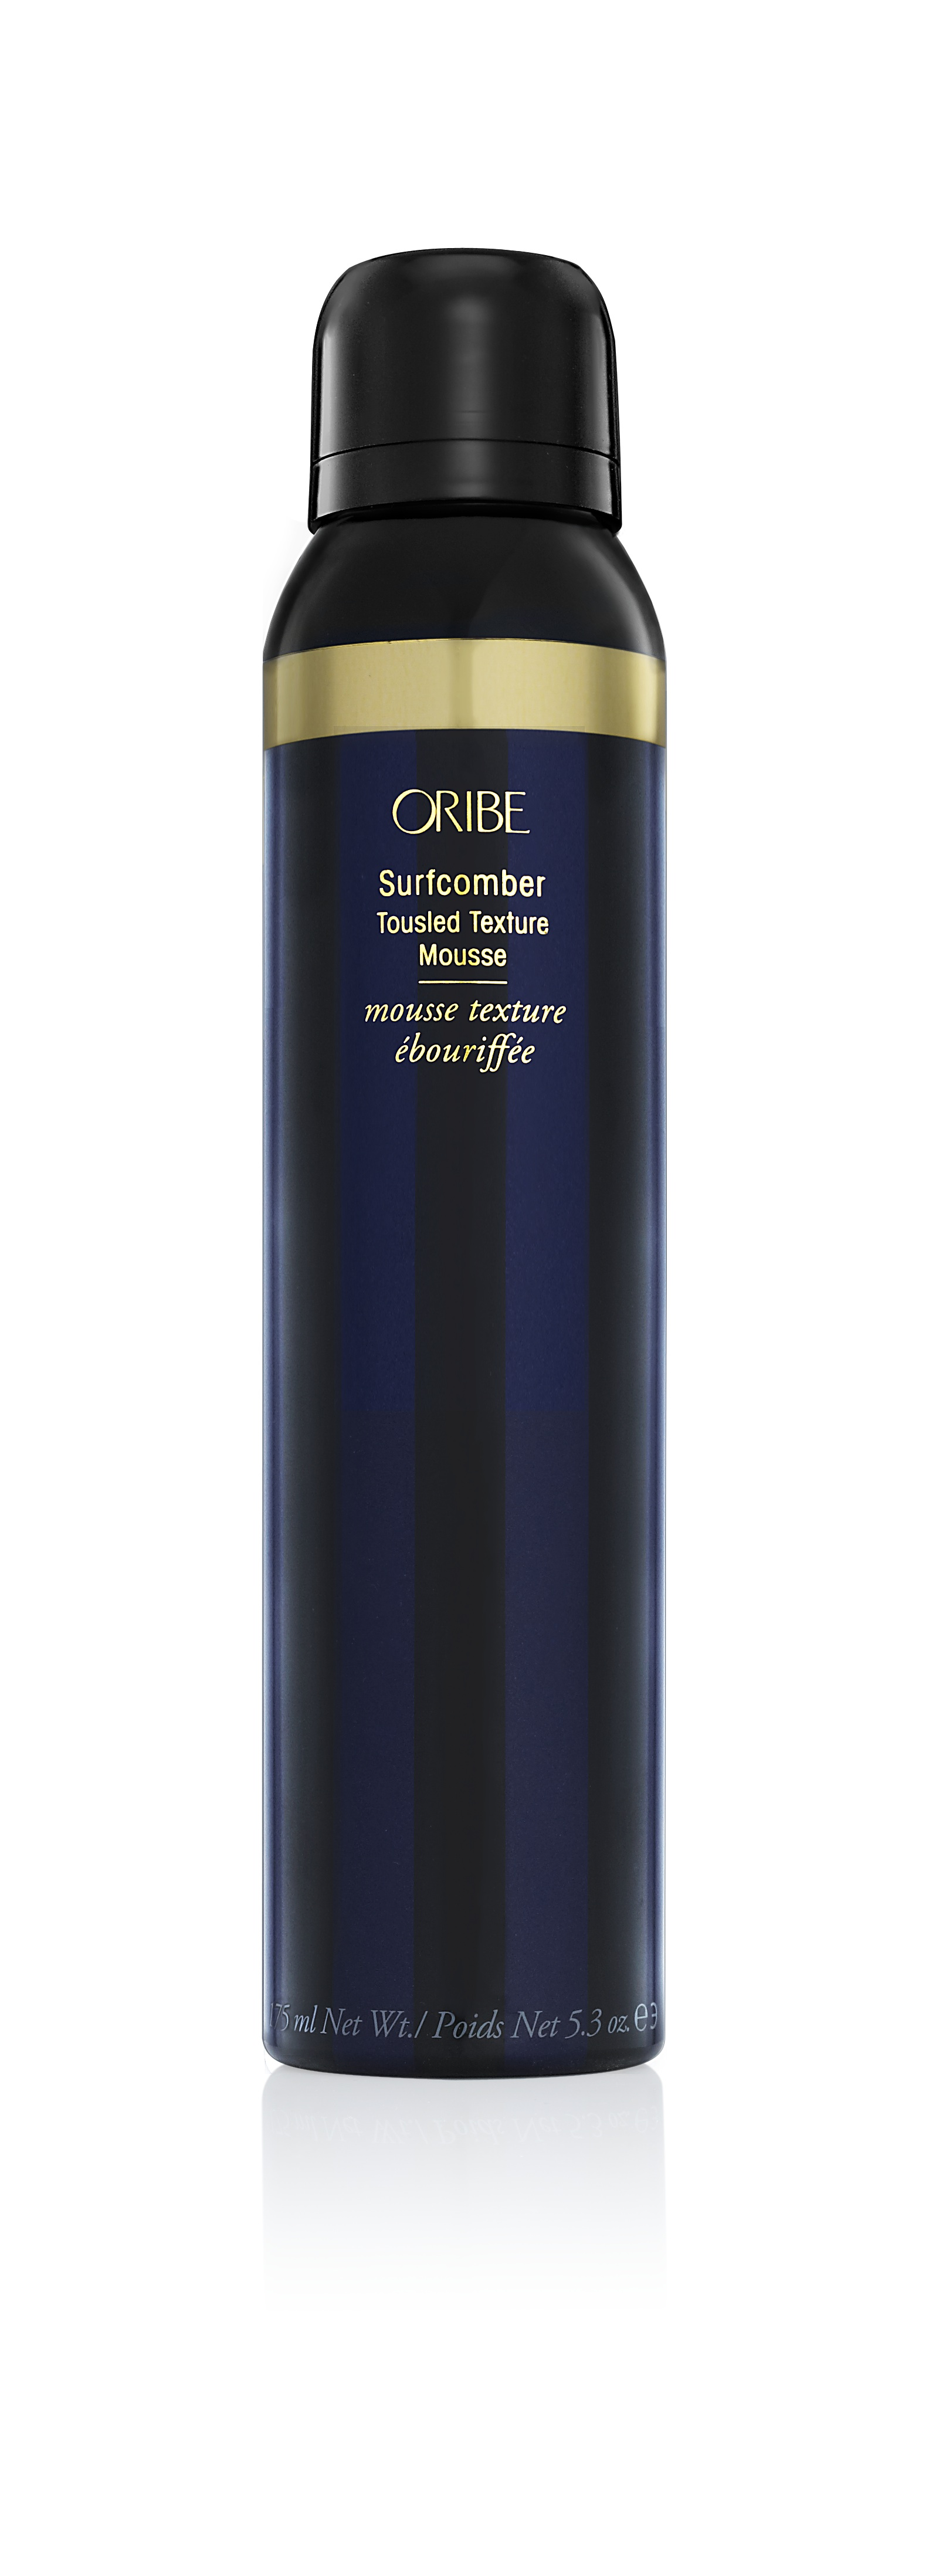 Oribe Surfcomber Tousled Texture Mousse